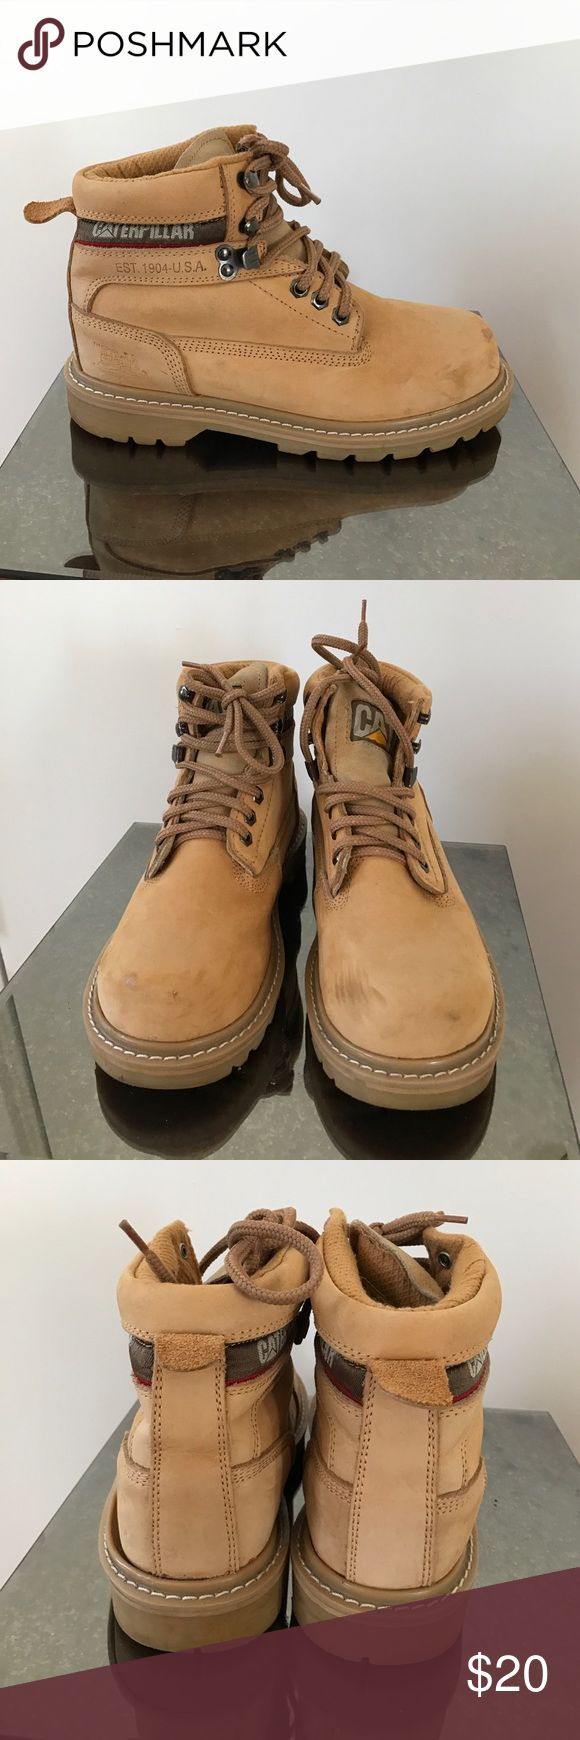 Caterpillar work boots wide width tan 7.5 These are pre loved caterpillar work boots. They are a men's wide width 5.5, which is a women's 7.5. Like walking on clouds!! These say the size and $19.99 faintly on the bottom. I bought these at a yard sale and they are just a little big for me! Caterpillar Shoes Ankle Boots & Booties